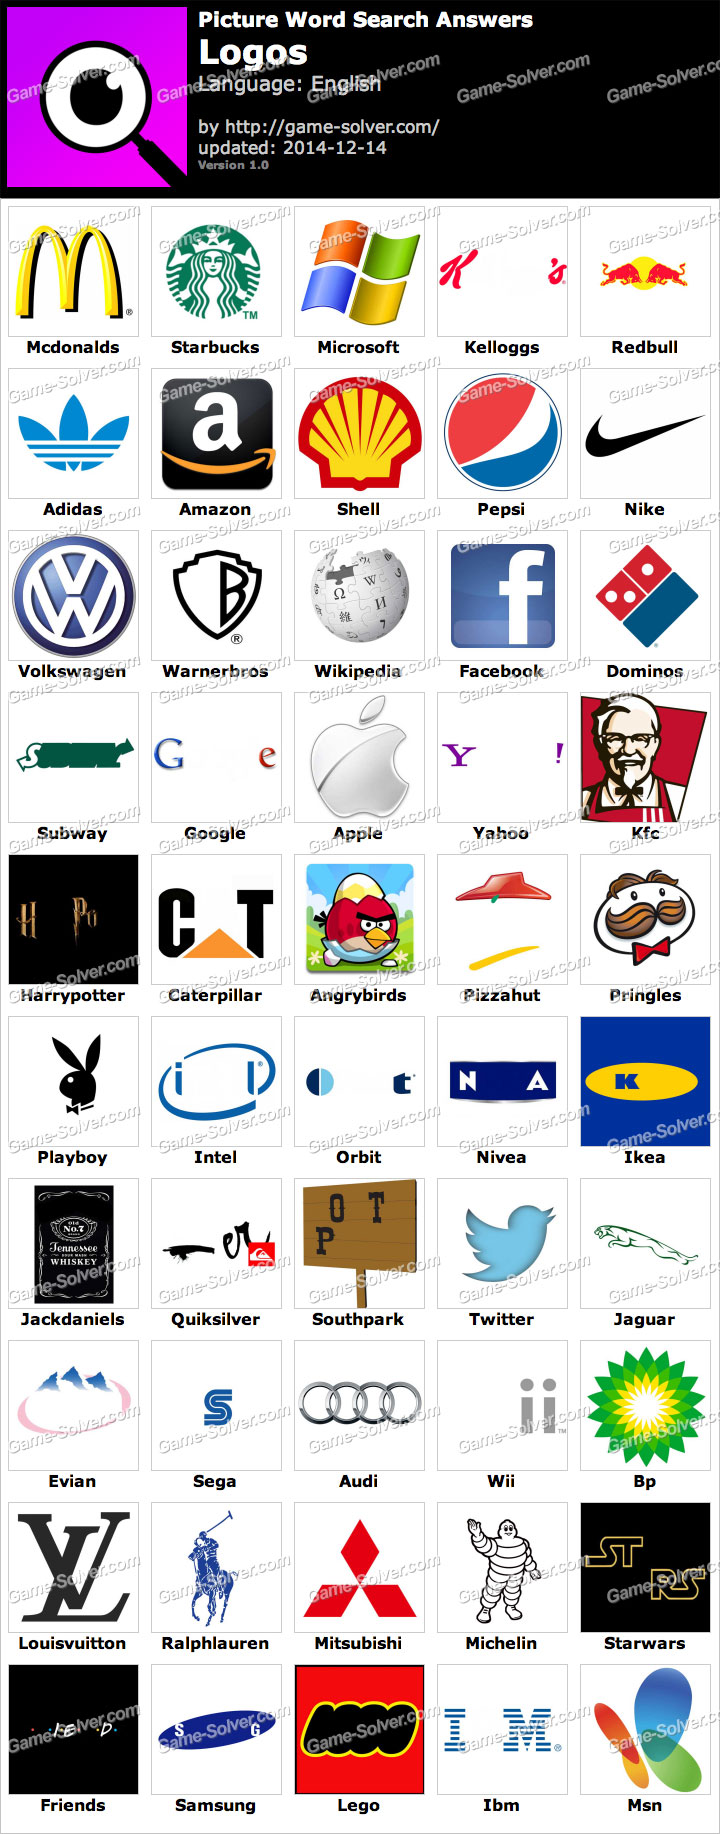 Picture Word Search Logos Answers